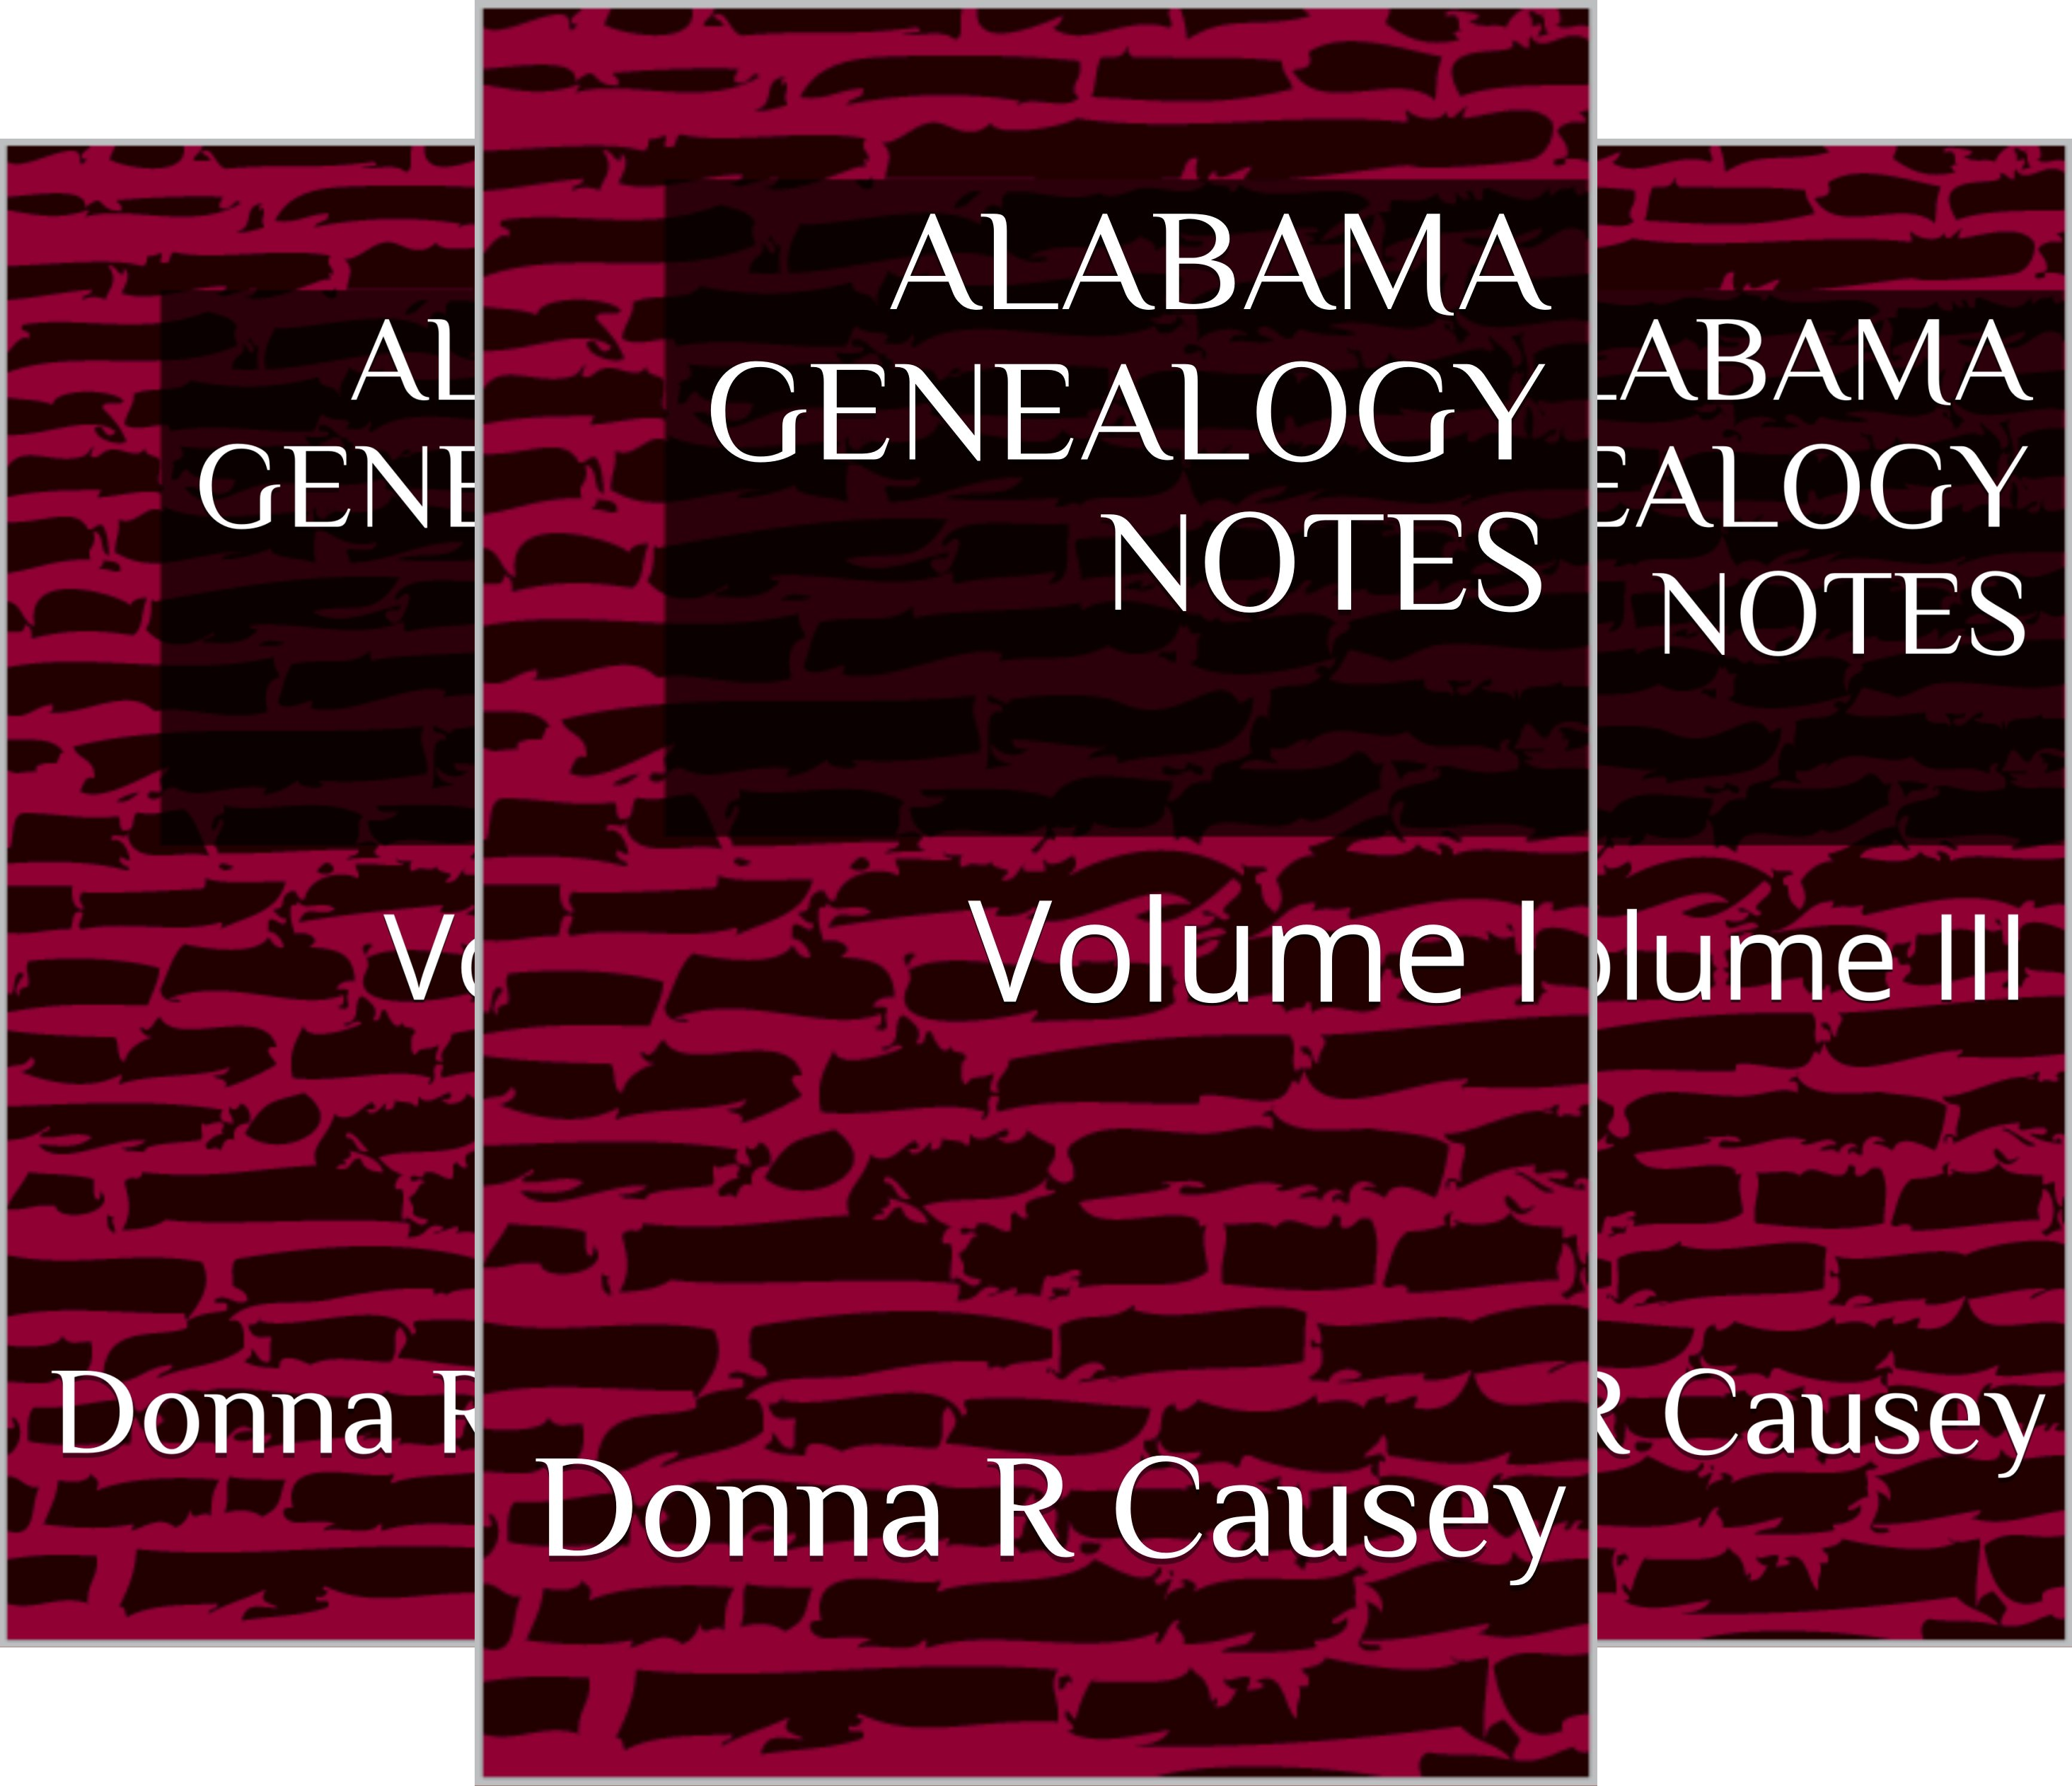 ALABAMA GENEALOGY NOTES (9 Book Series)